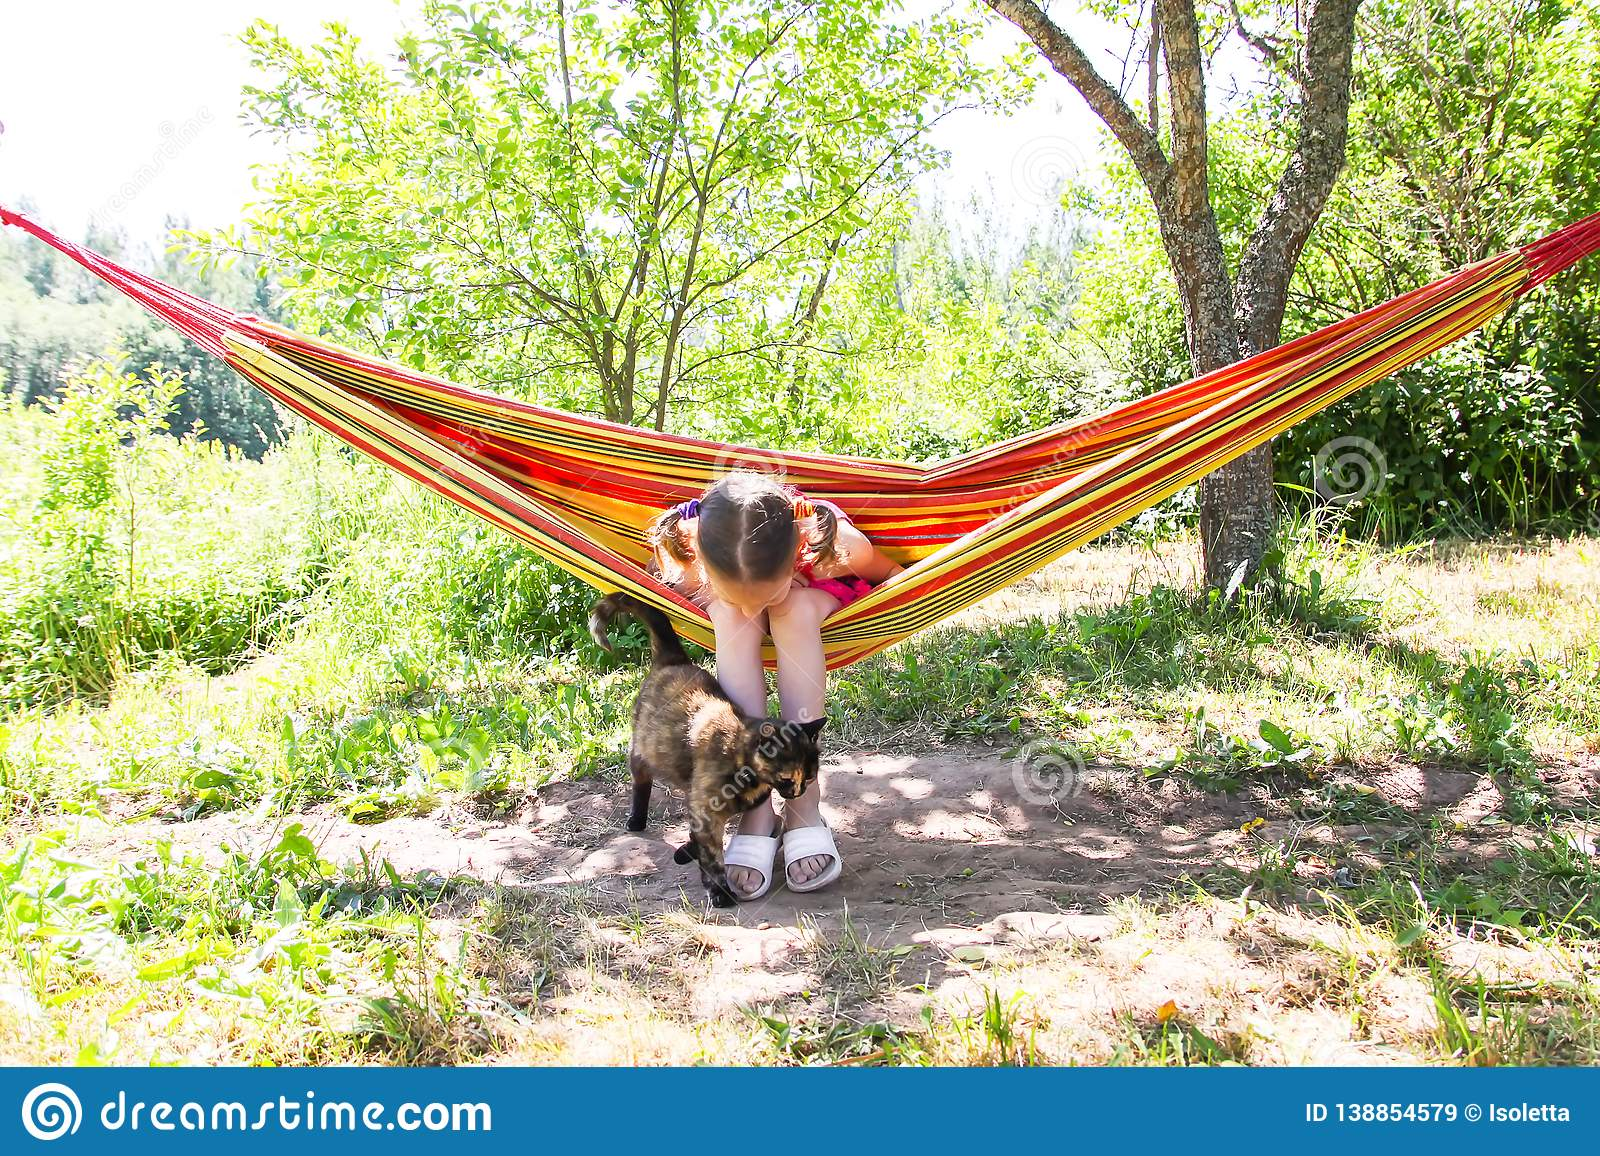 Adorable little girl with curly hair in colorful striped hammock on summer nature background in countryside